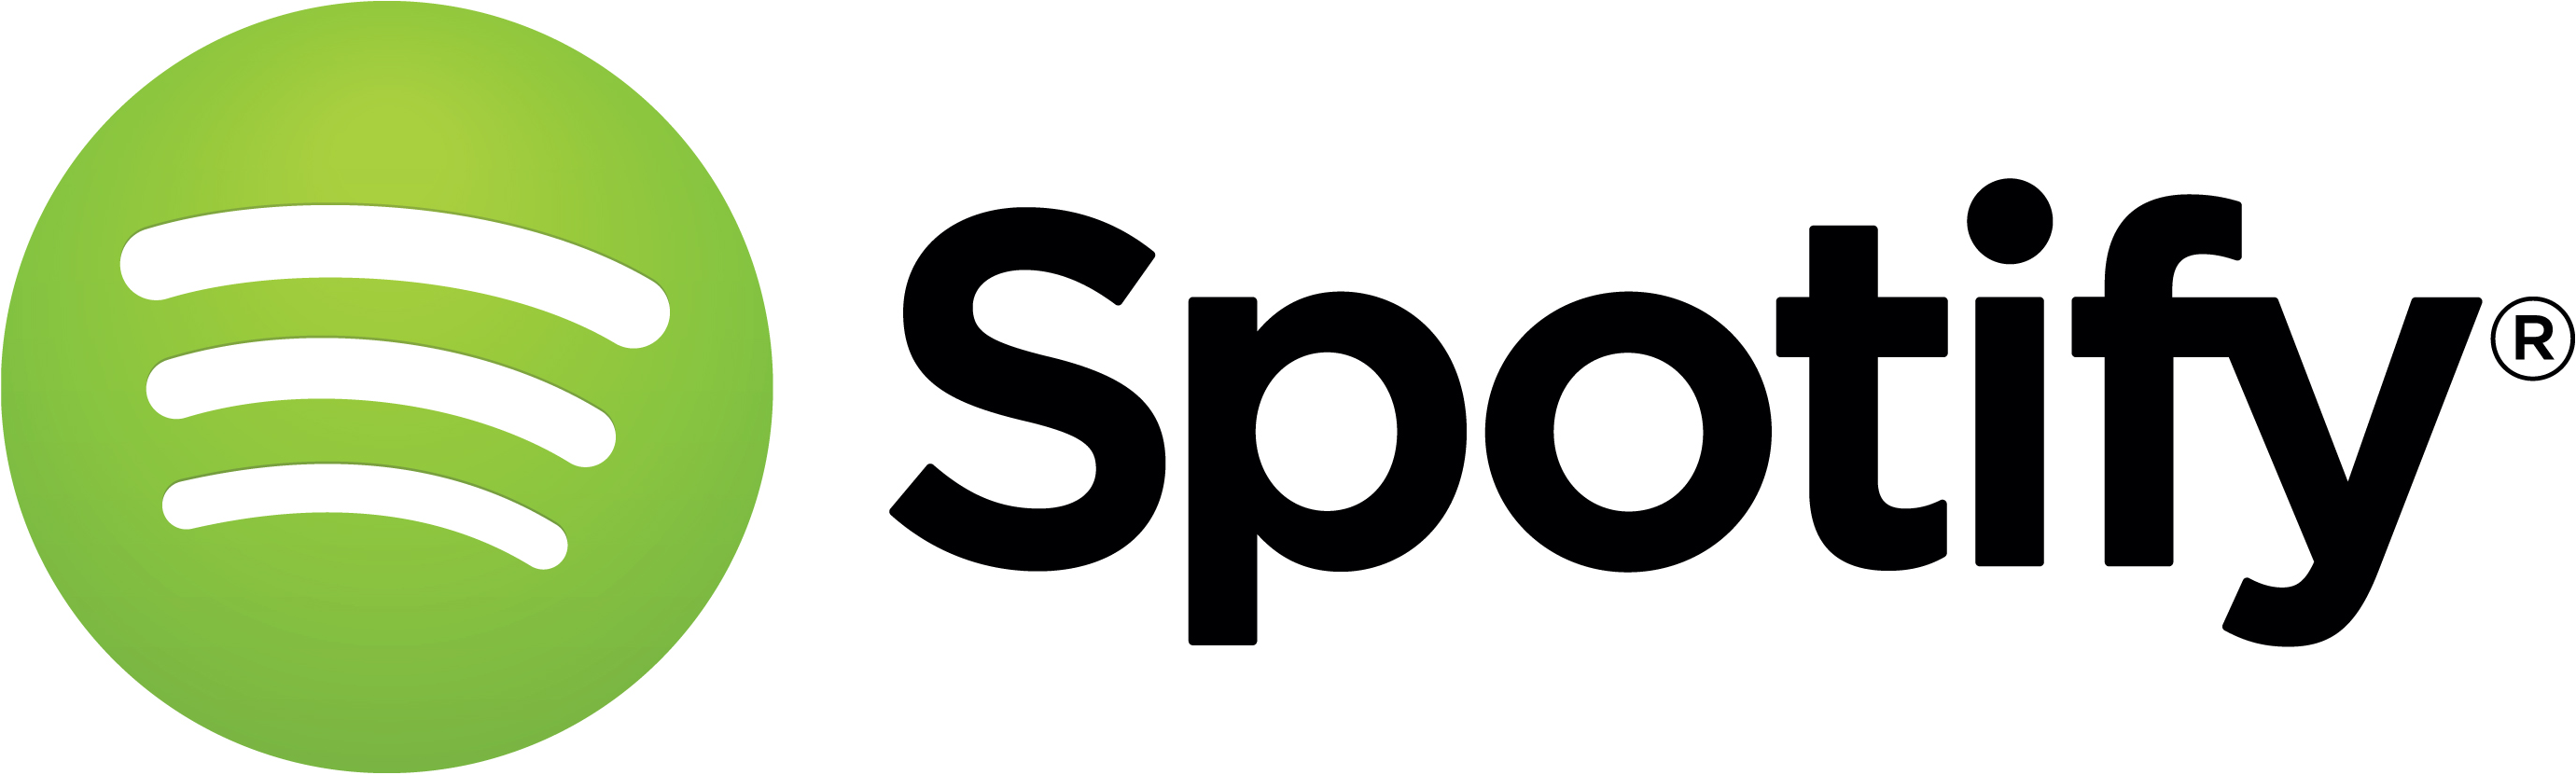 Spotify_logo_detail